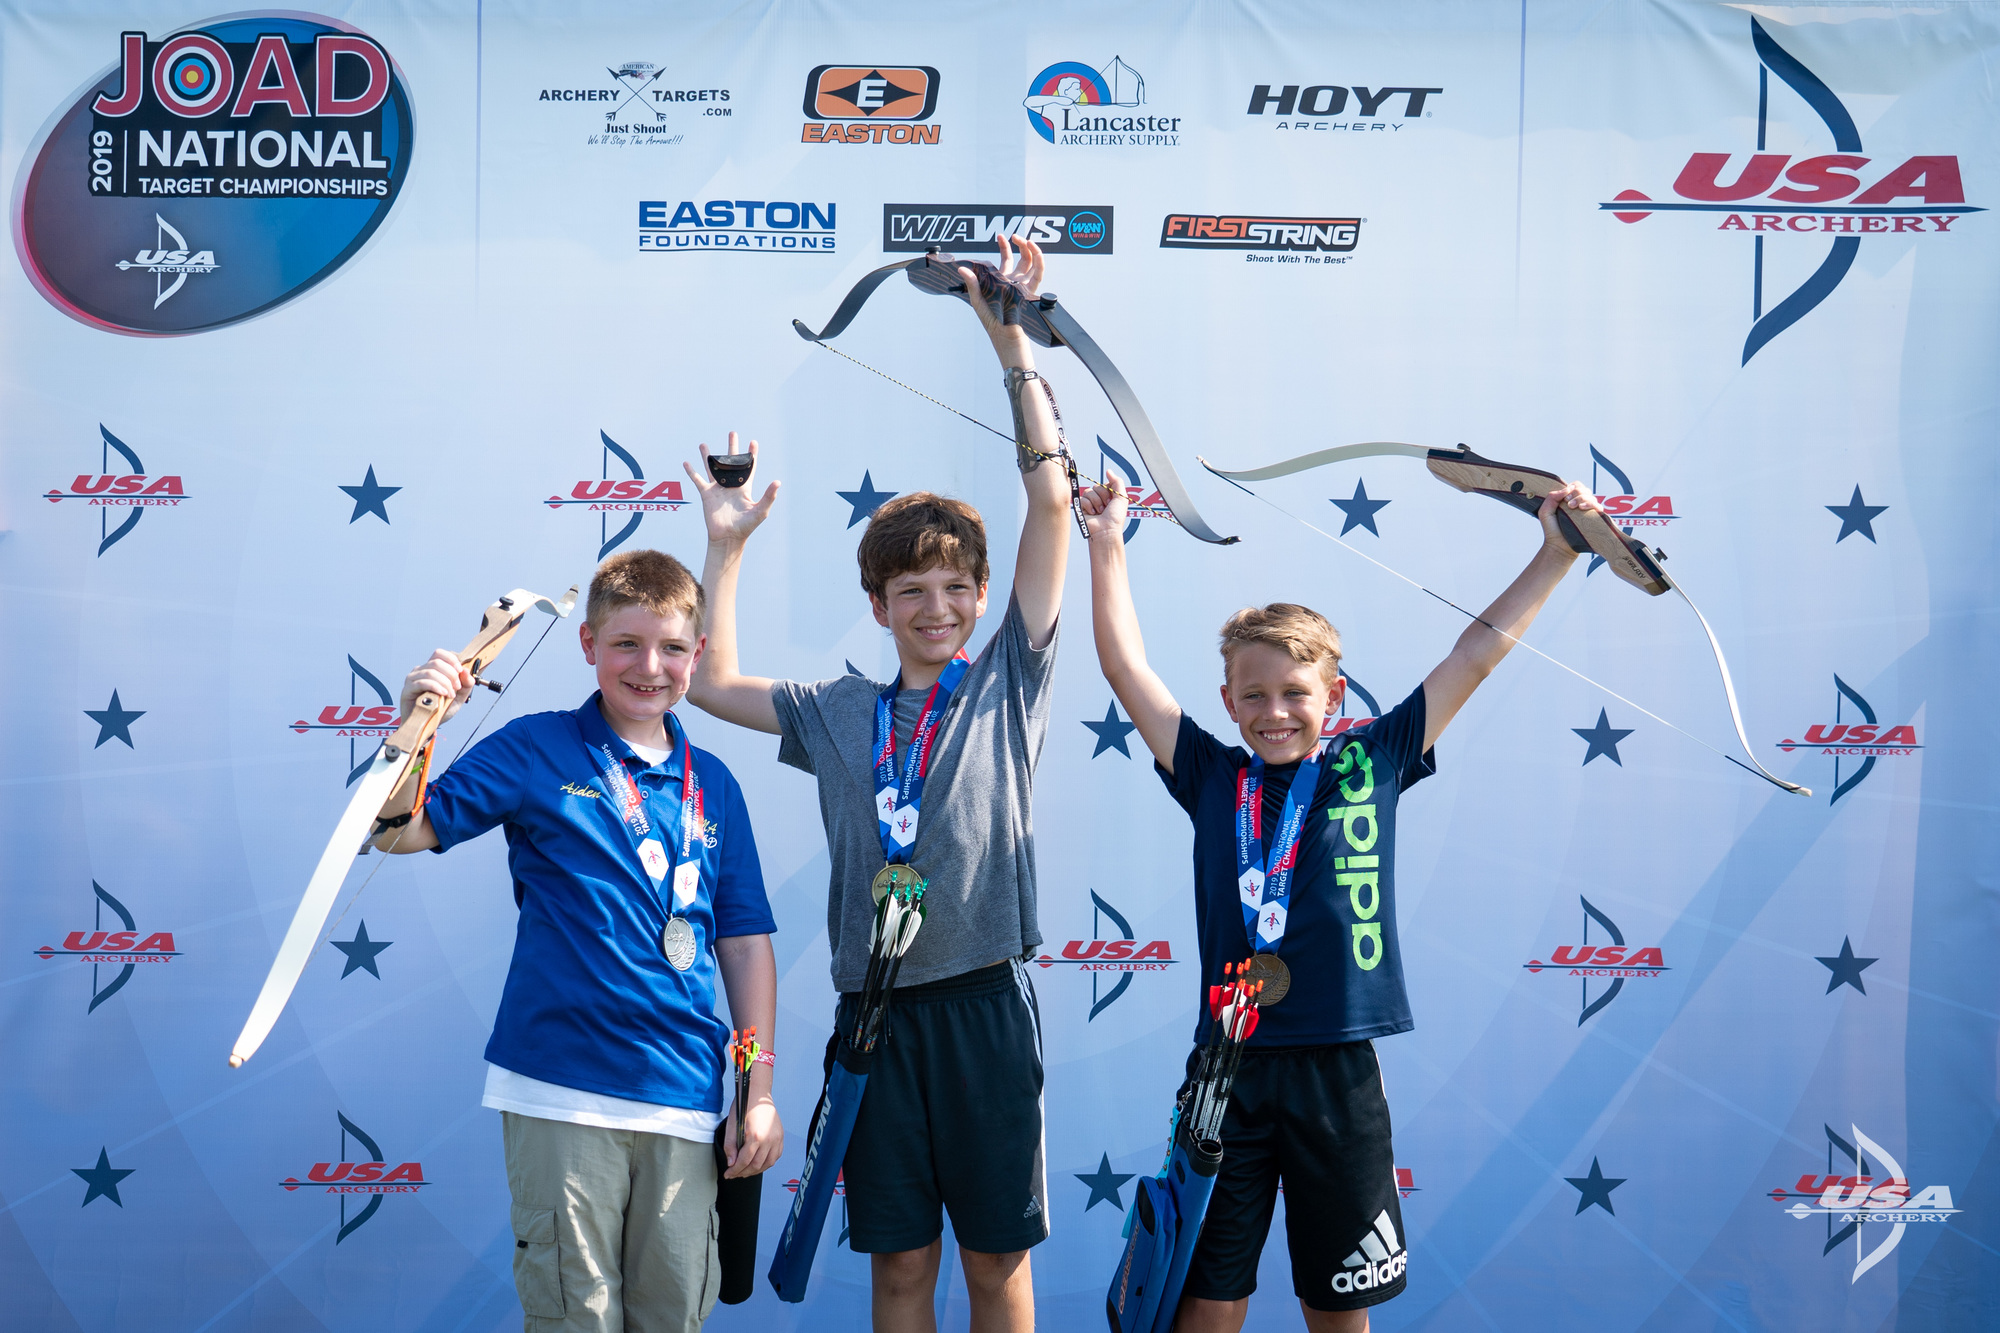 USA Archery Crowns JOAD National Champions in Raleigh